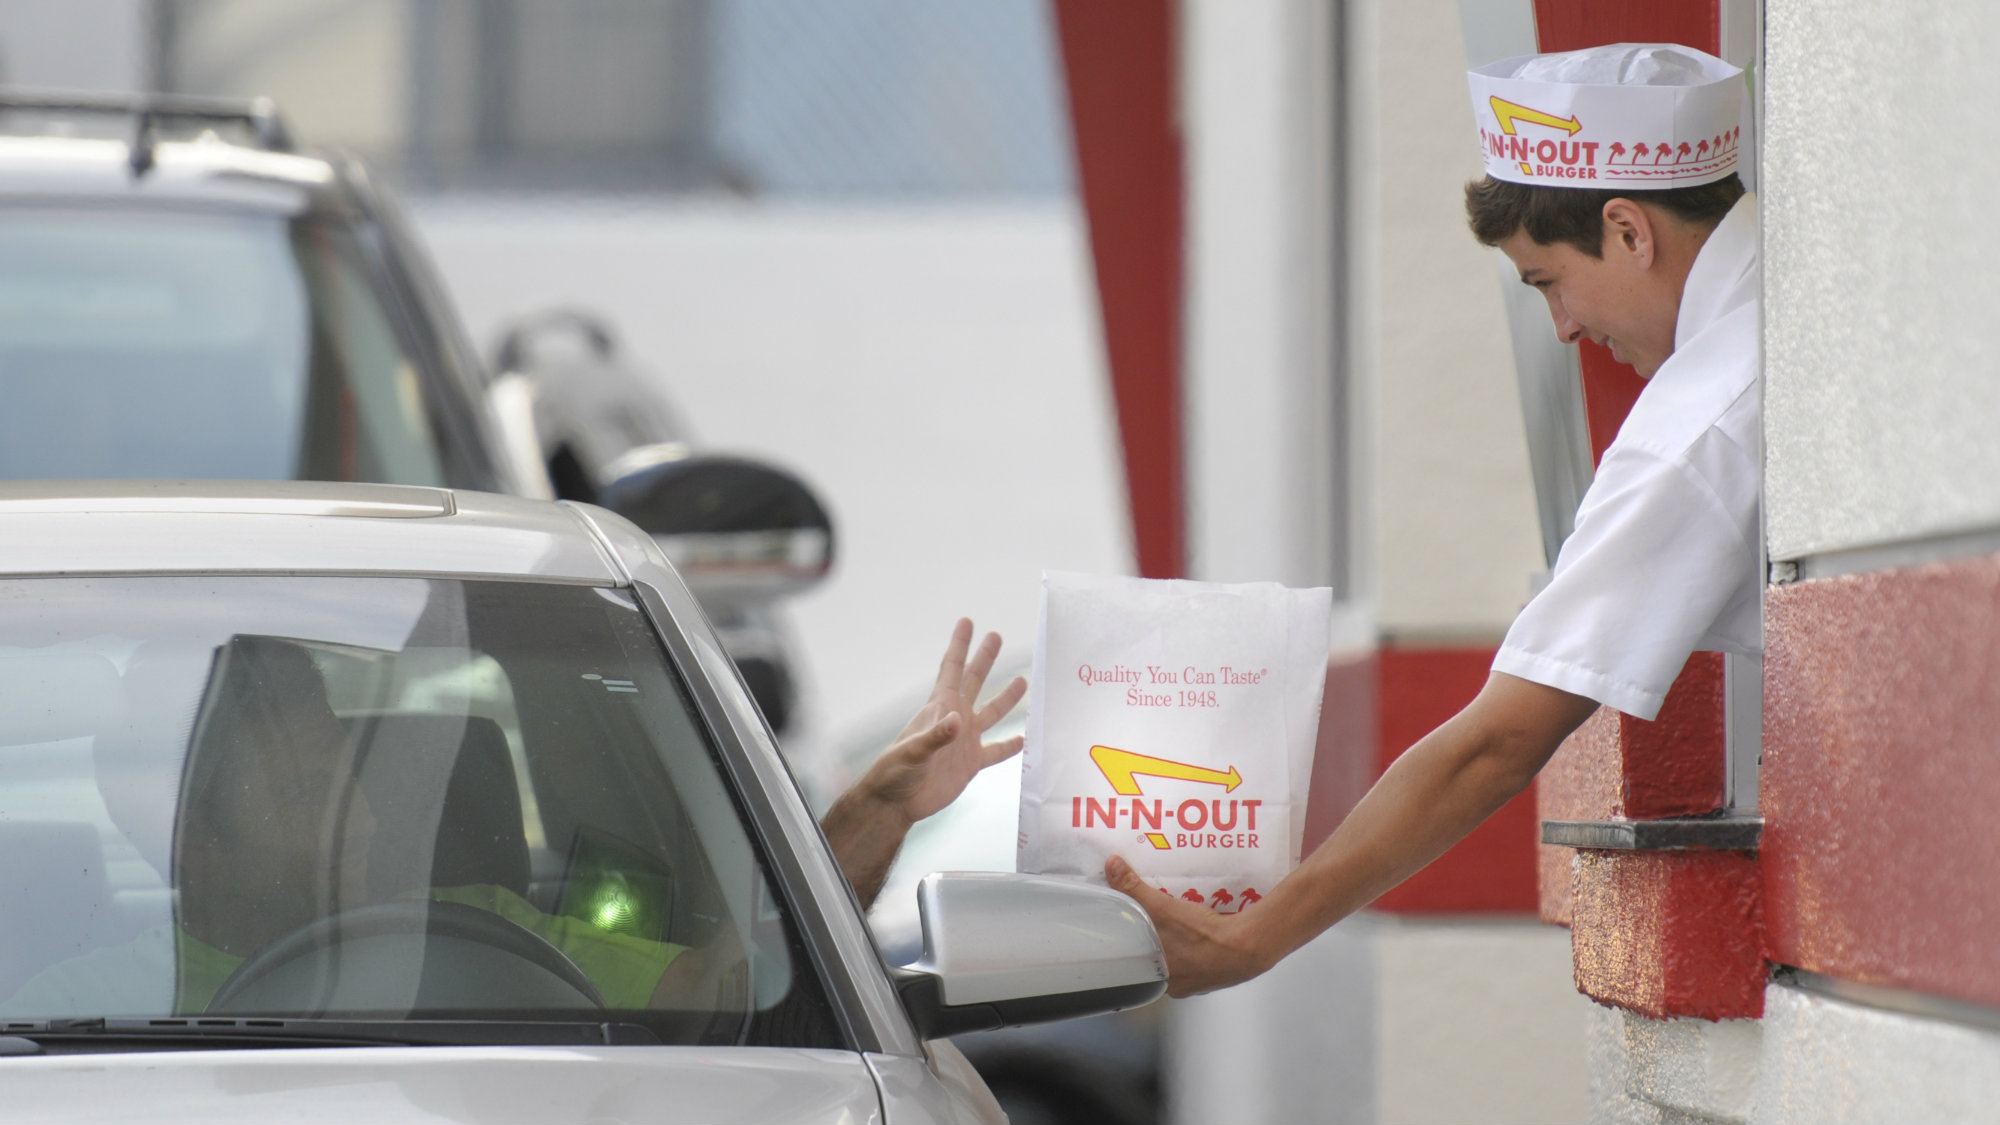 In this June 11, 2010 photo, a customer reaches for his order from the drive-through at In-N-Out Burger in the Hollywood area of Los Angeles.